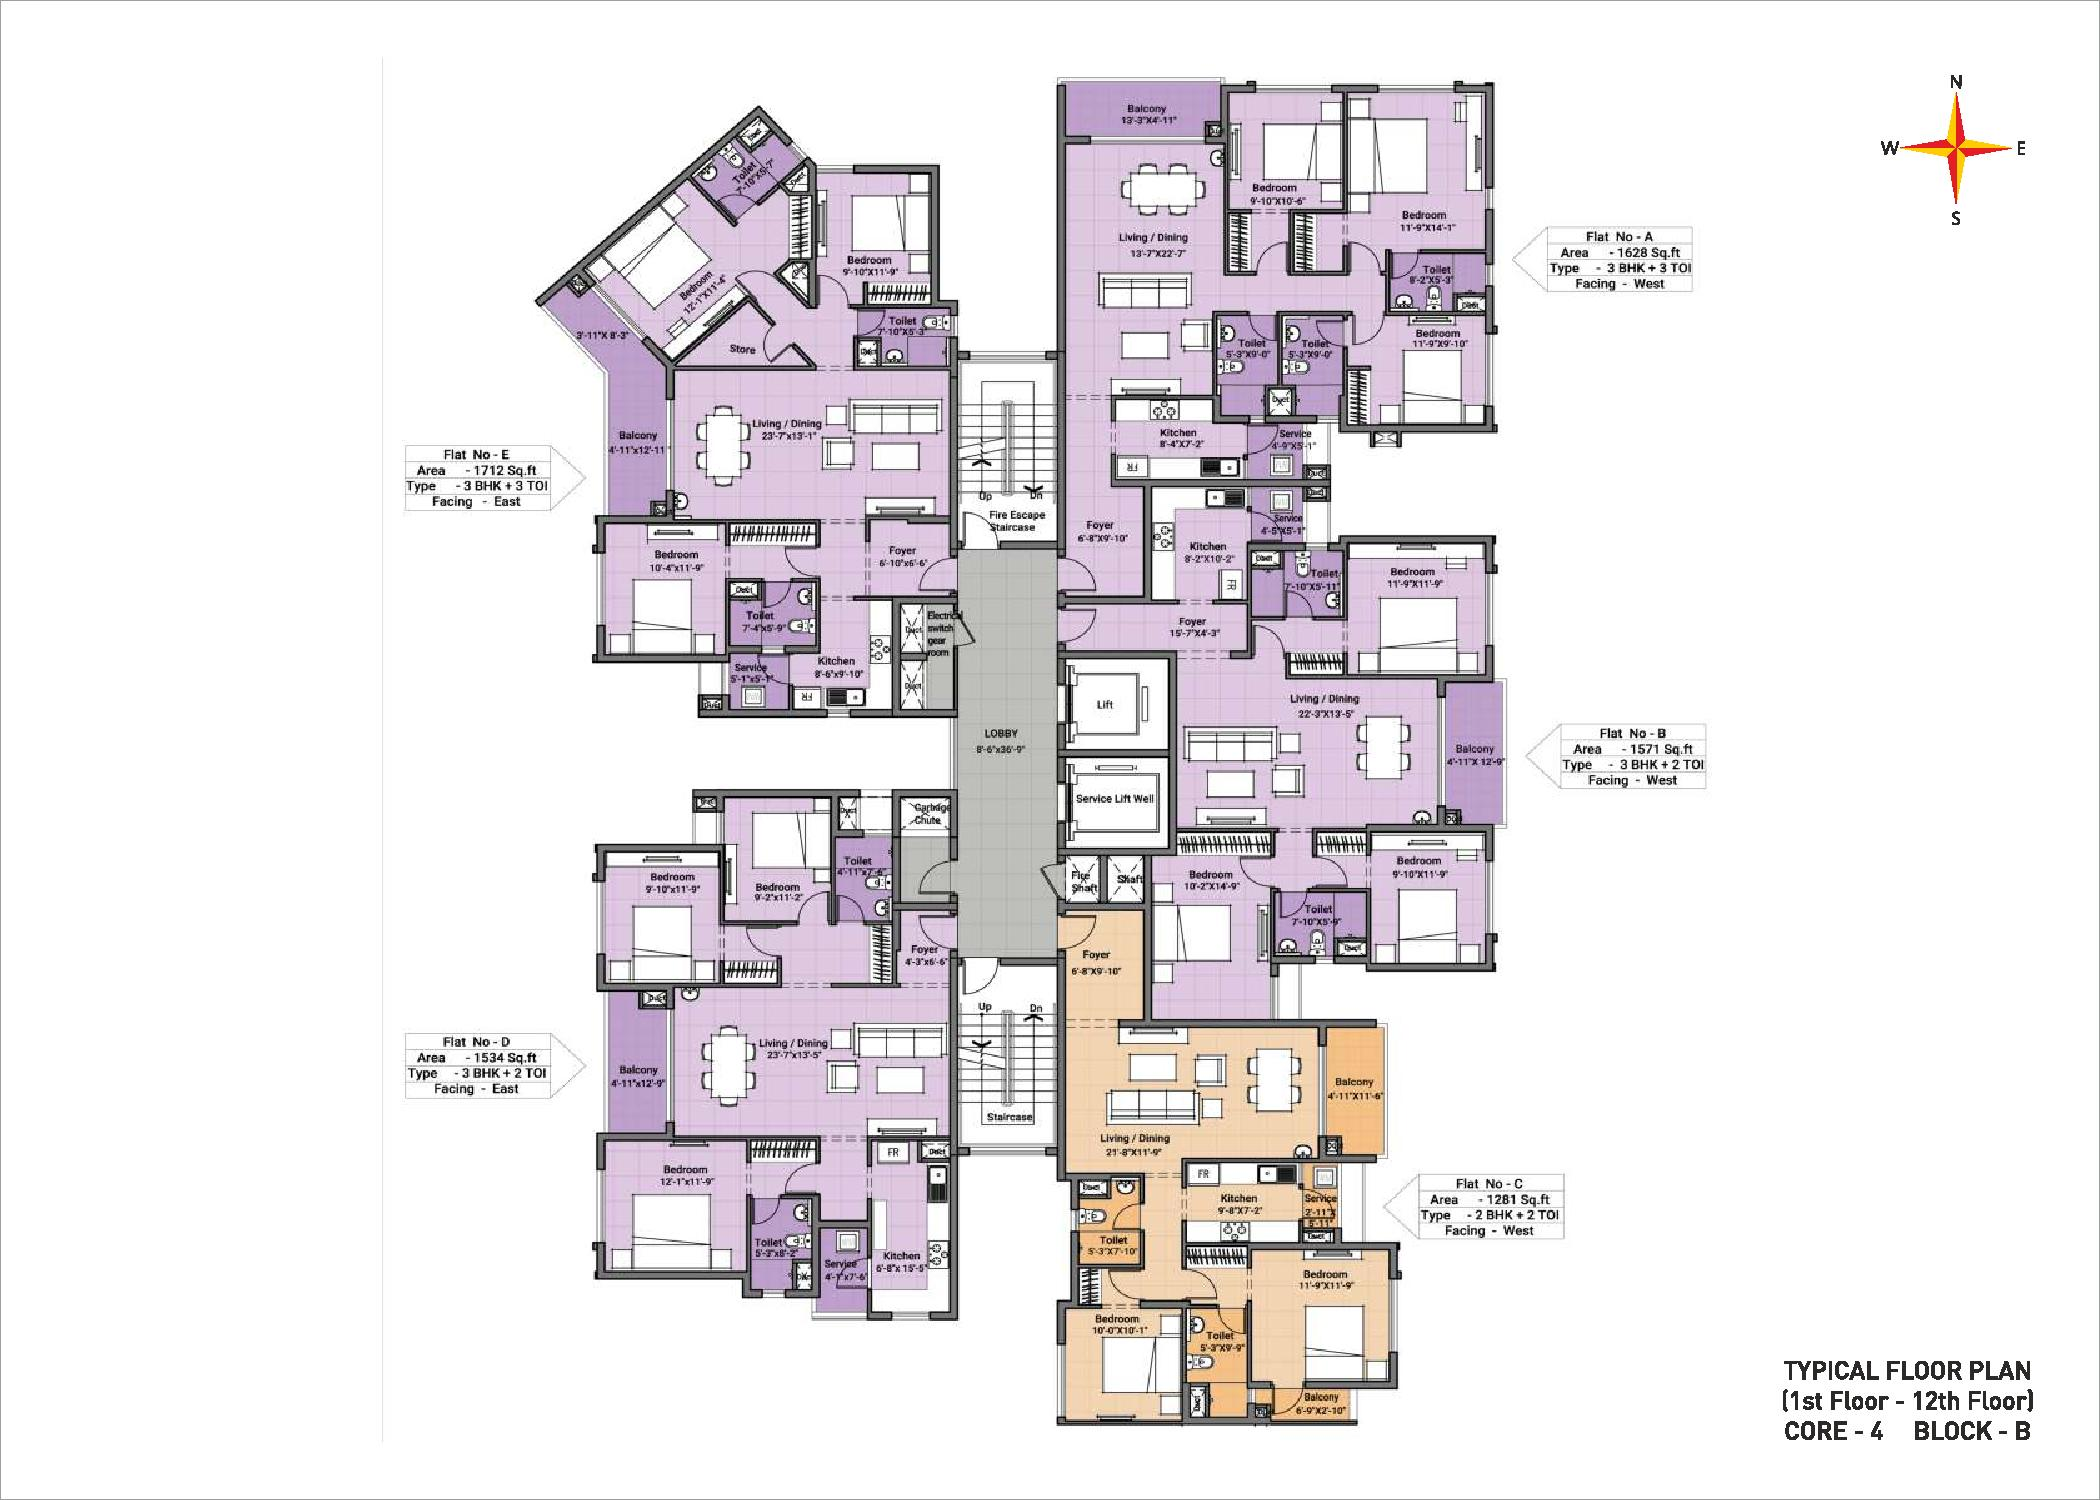 Typical floor plan - Block B Core 4(1-12th floor)